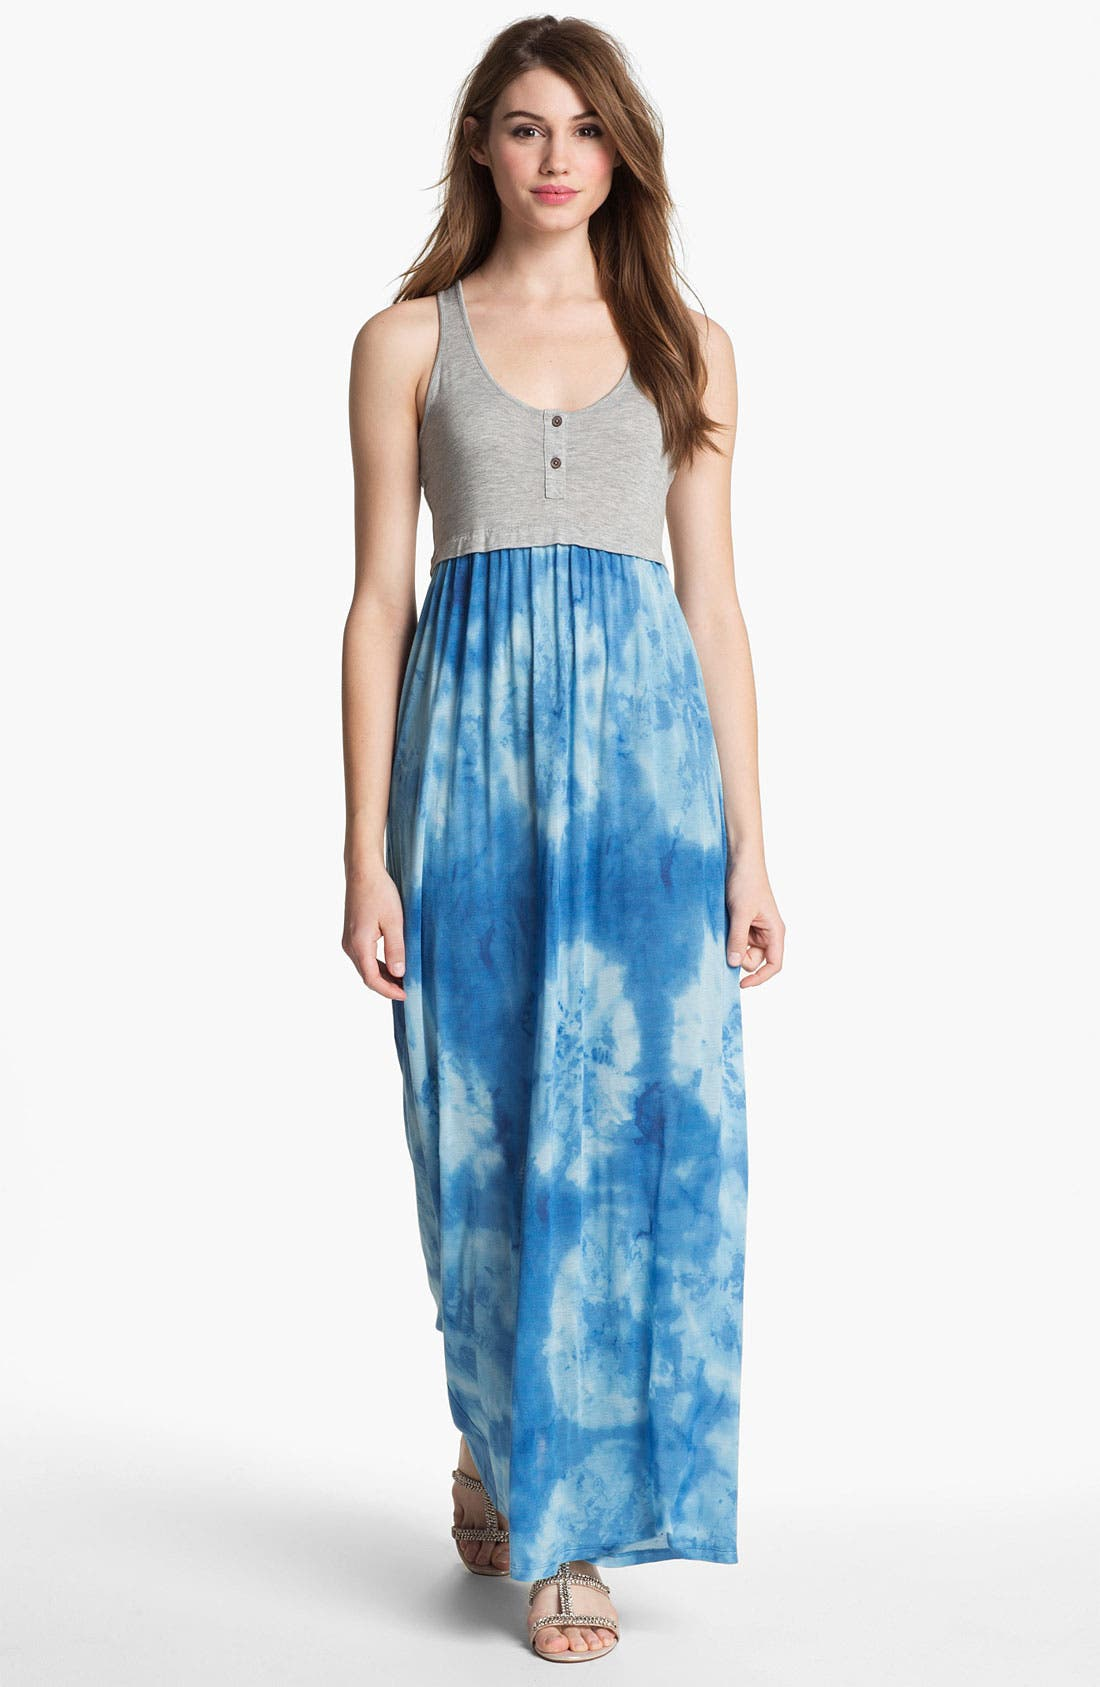 Alternate Image 1 Selected - Two by Vince Camuto Tie Dye Racerback Maxi Dress